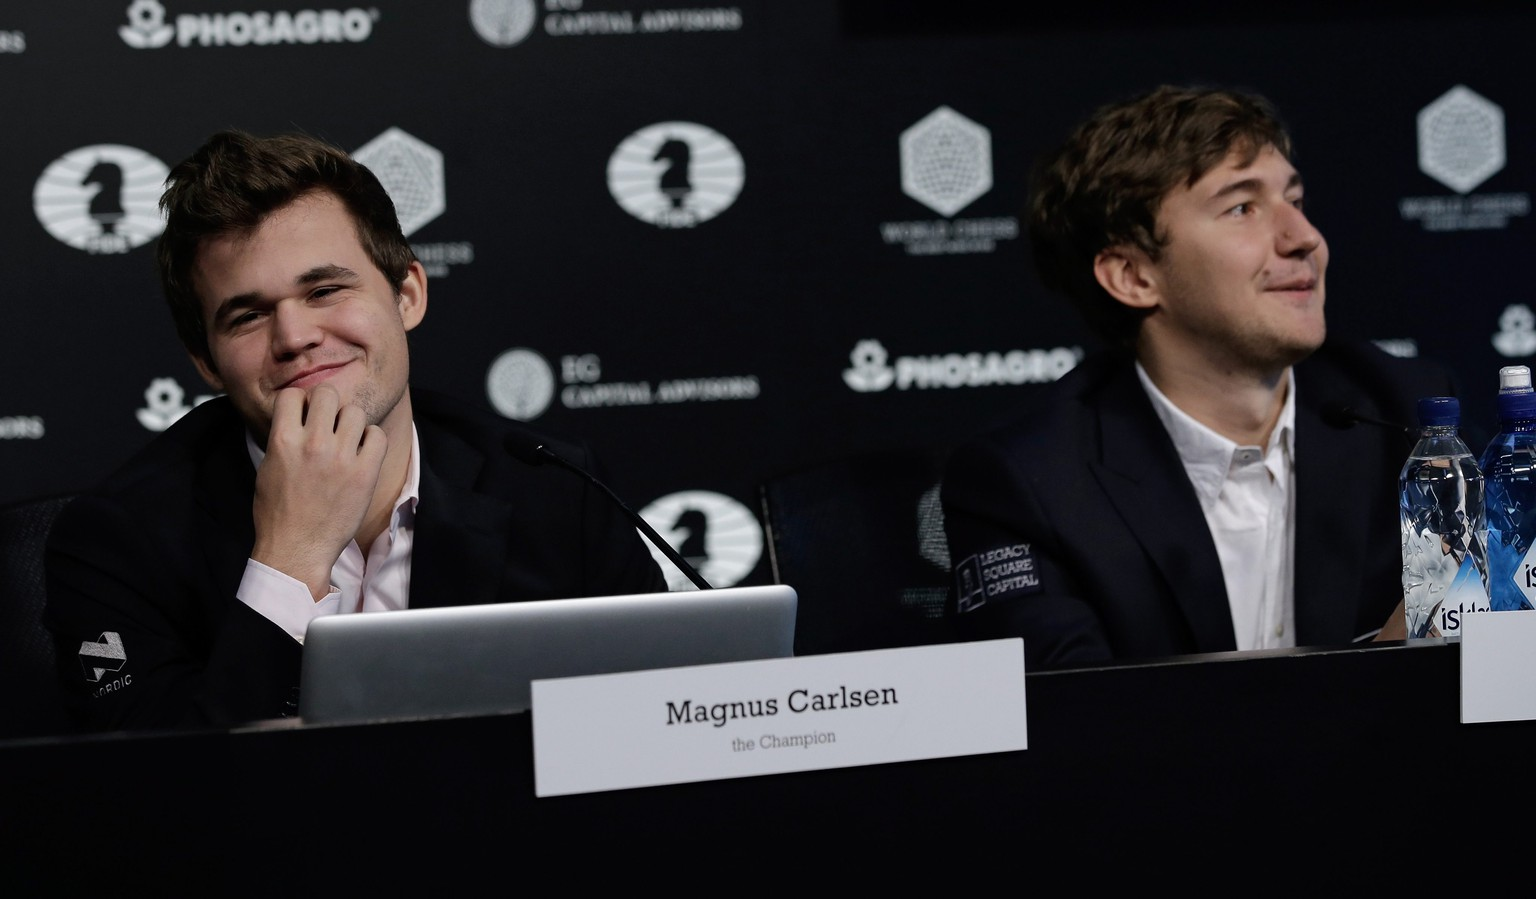 epa05651379 Chess players Magnus Carlsen (L) of Norway, the reigning world chess champion, and Sergey Karjakin, of Russia, attend a press conference after round 12 ended in a draw of the World Chess Championship in New York,  New York, USA, 28 November 2016.  EPA/PETER FOLEY